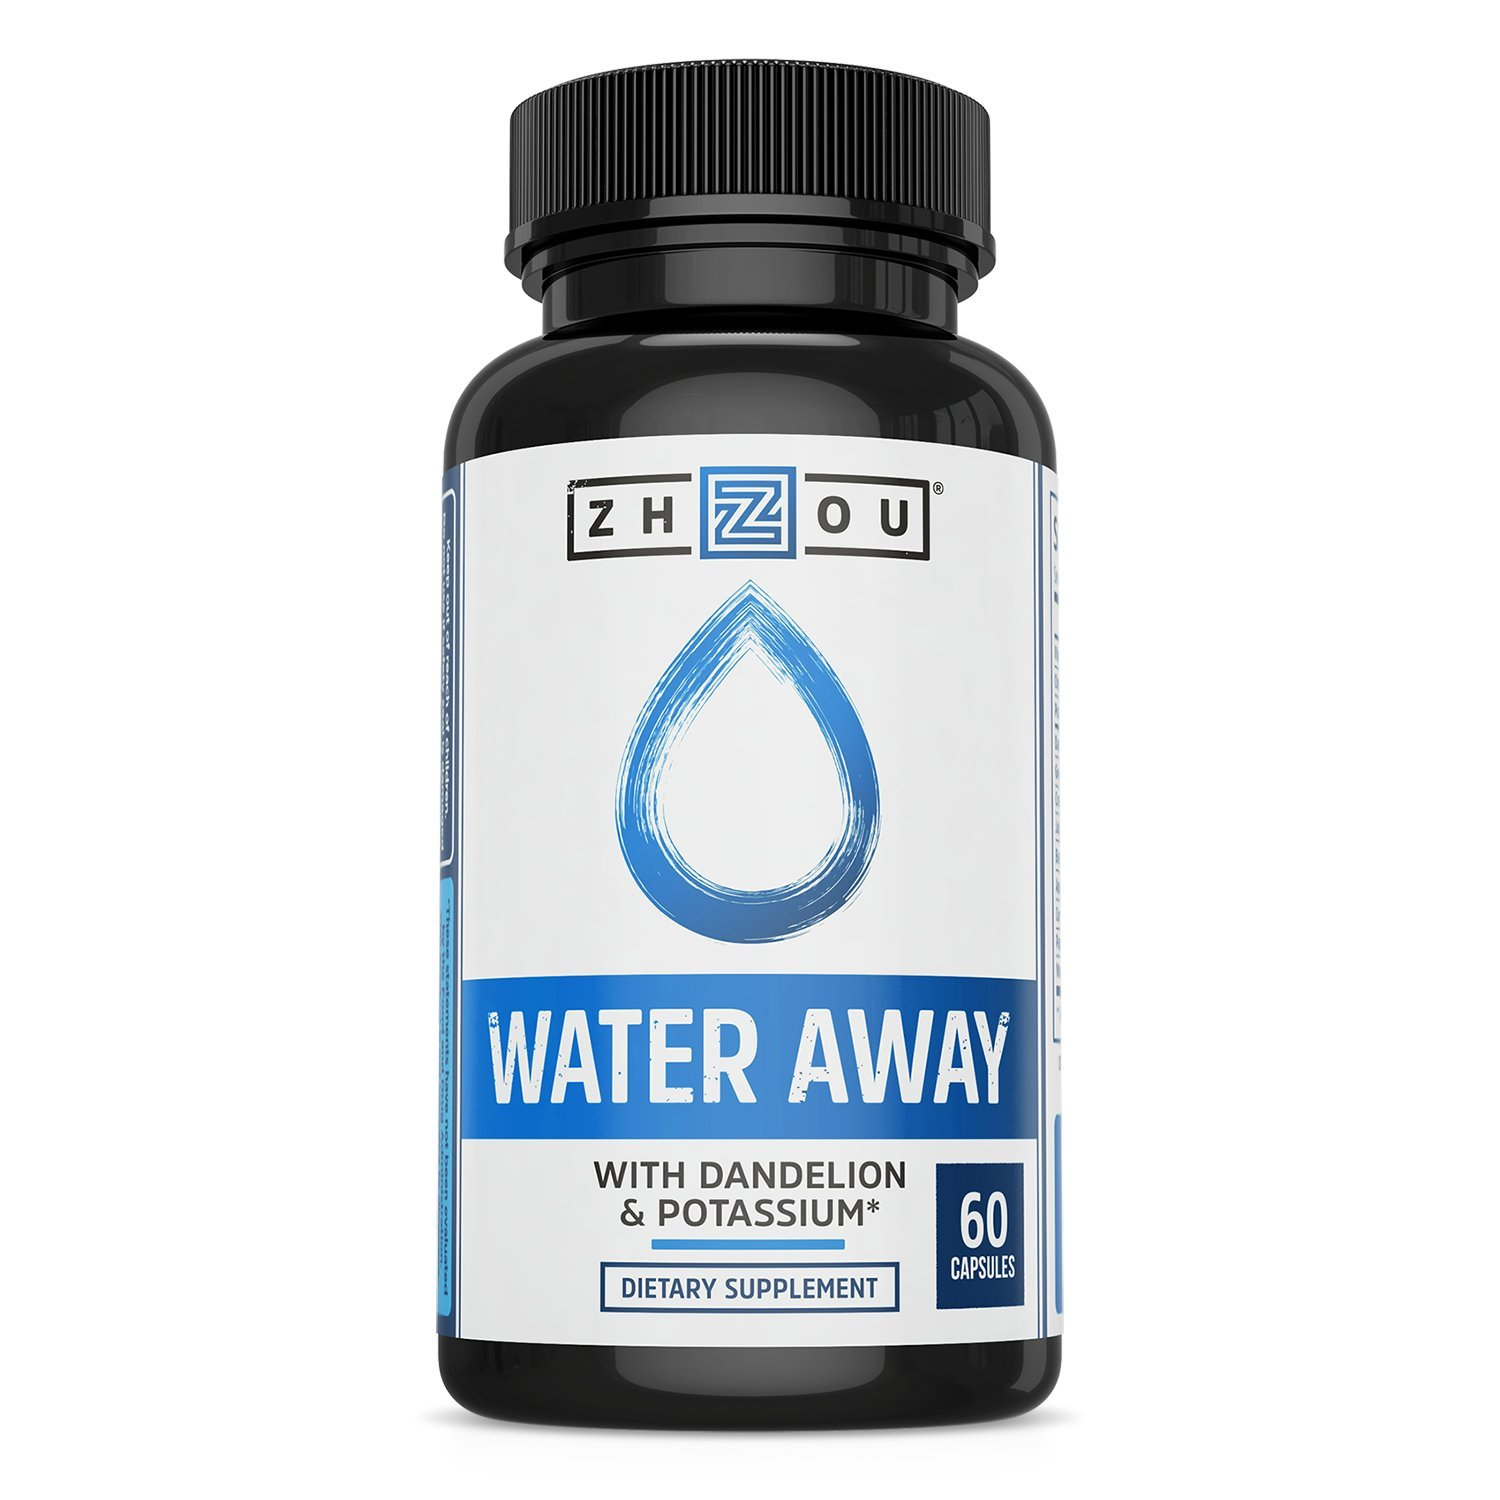 WATER AWAY Herbal Formula for Healthy Fluid Balance - Premium Herbal Blend with Dandelion, Potassium, Green Tea & More - 60 capsules by Zhou Nutrition